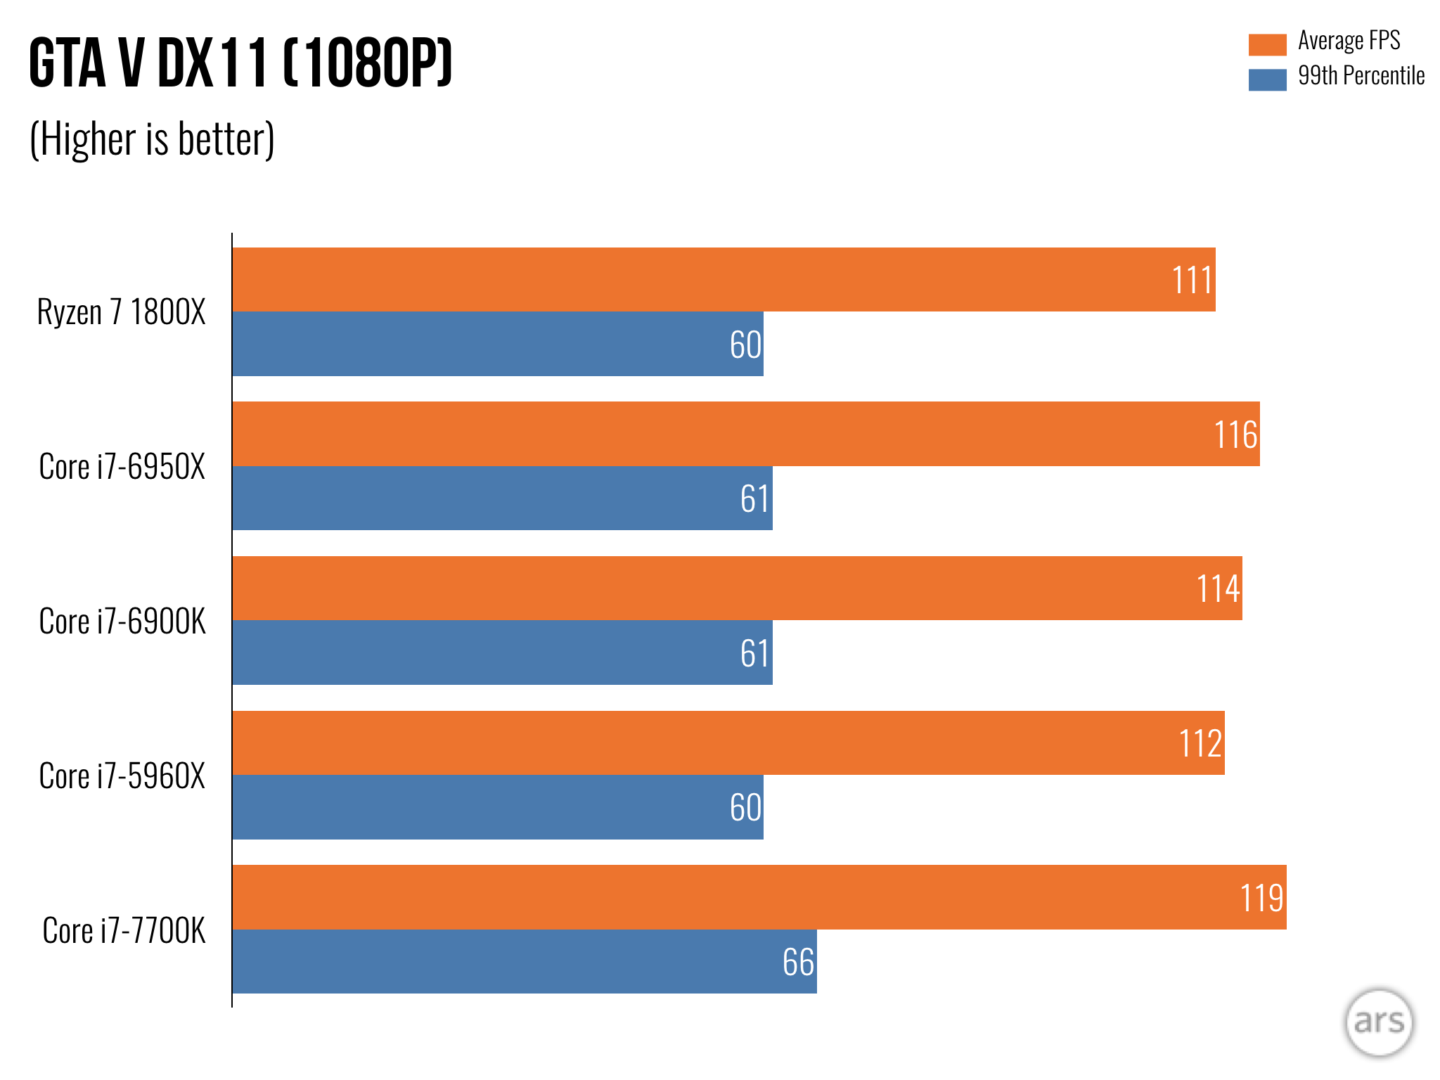 https://cdn.arstechnica.net/wp-content/uploads/sites/3/2017/03/Ryzen-Benchmarks-Stock.018-1440x1080.png